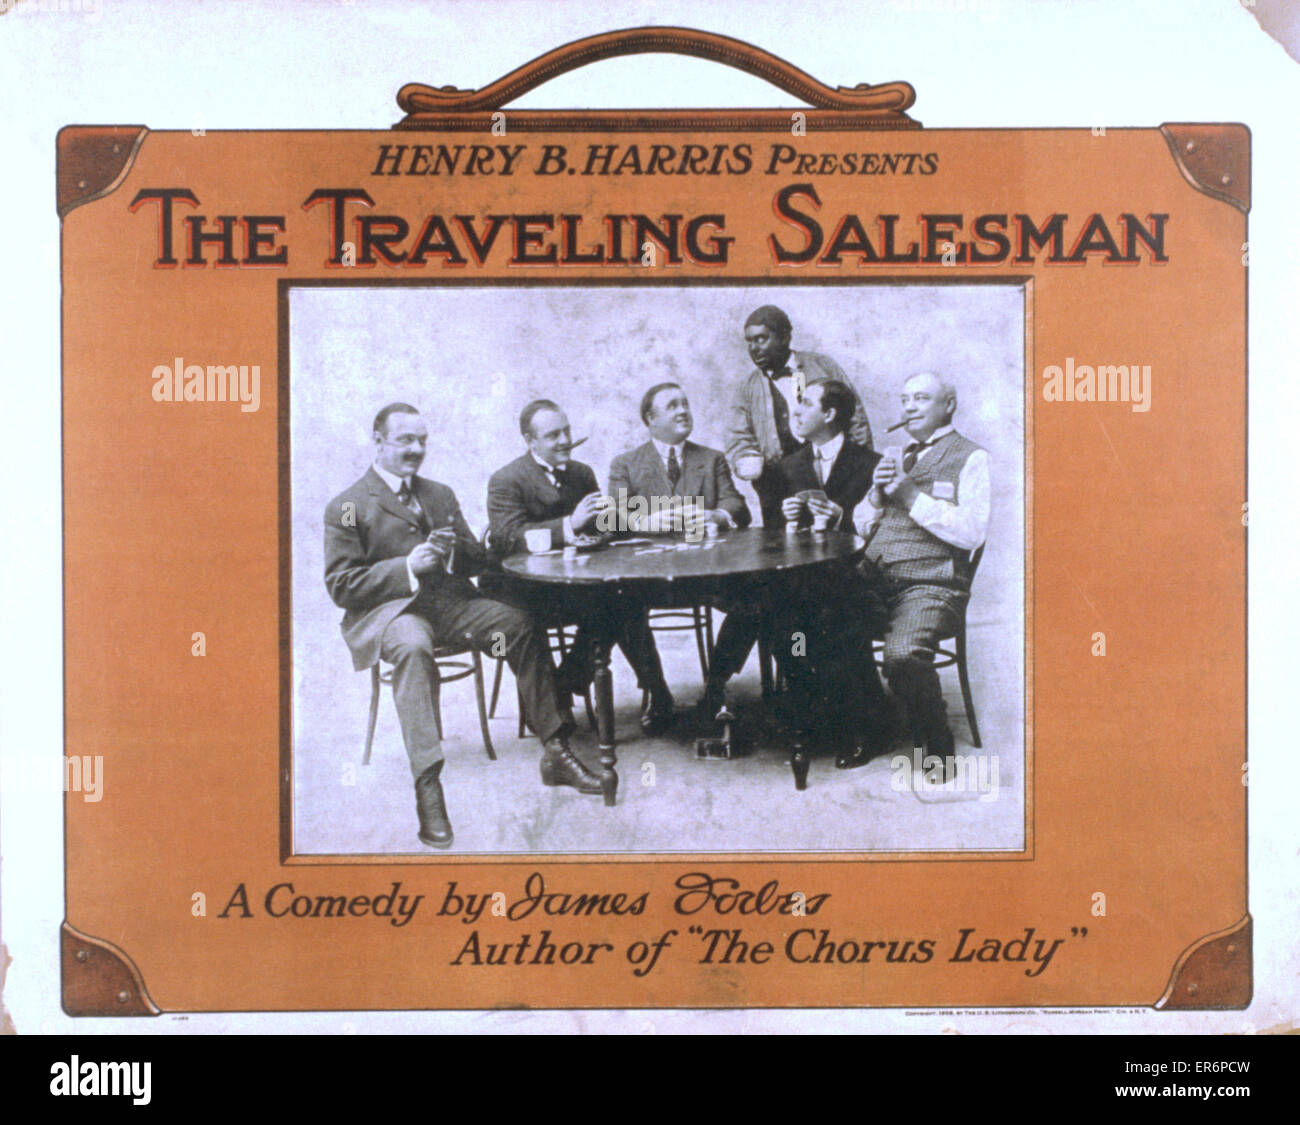 Henry B. Harris presents The traveling salesman a comedy by James Forbes,  author of